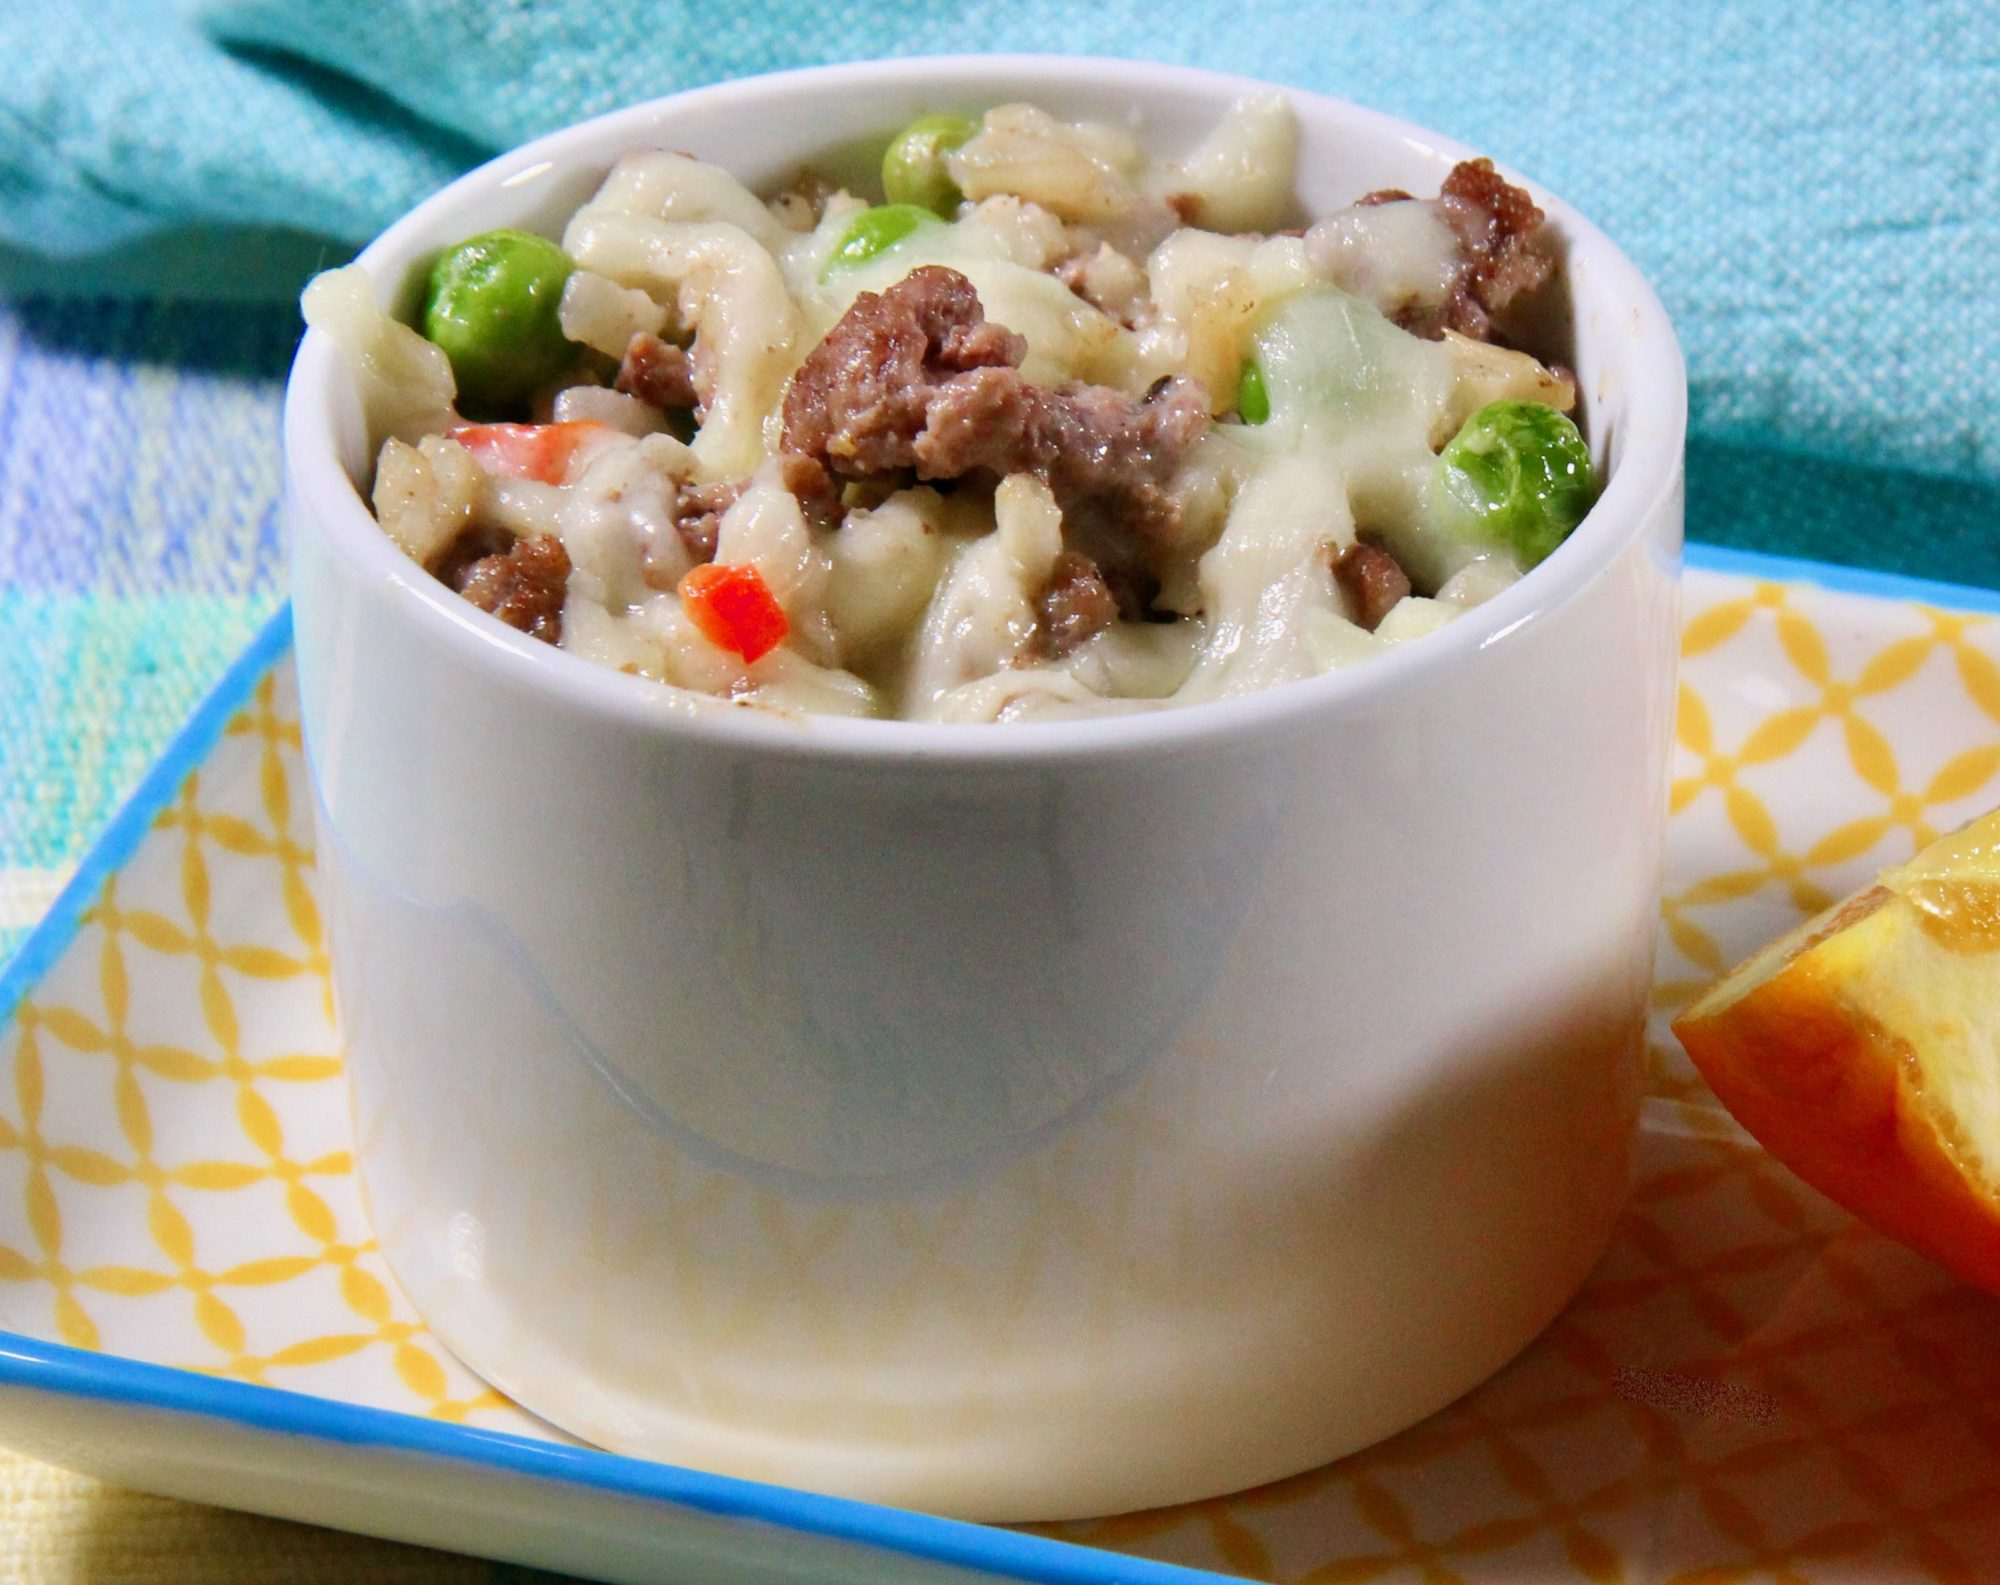 Ground Beef Casserole with Brown Rice